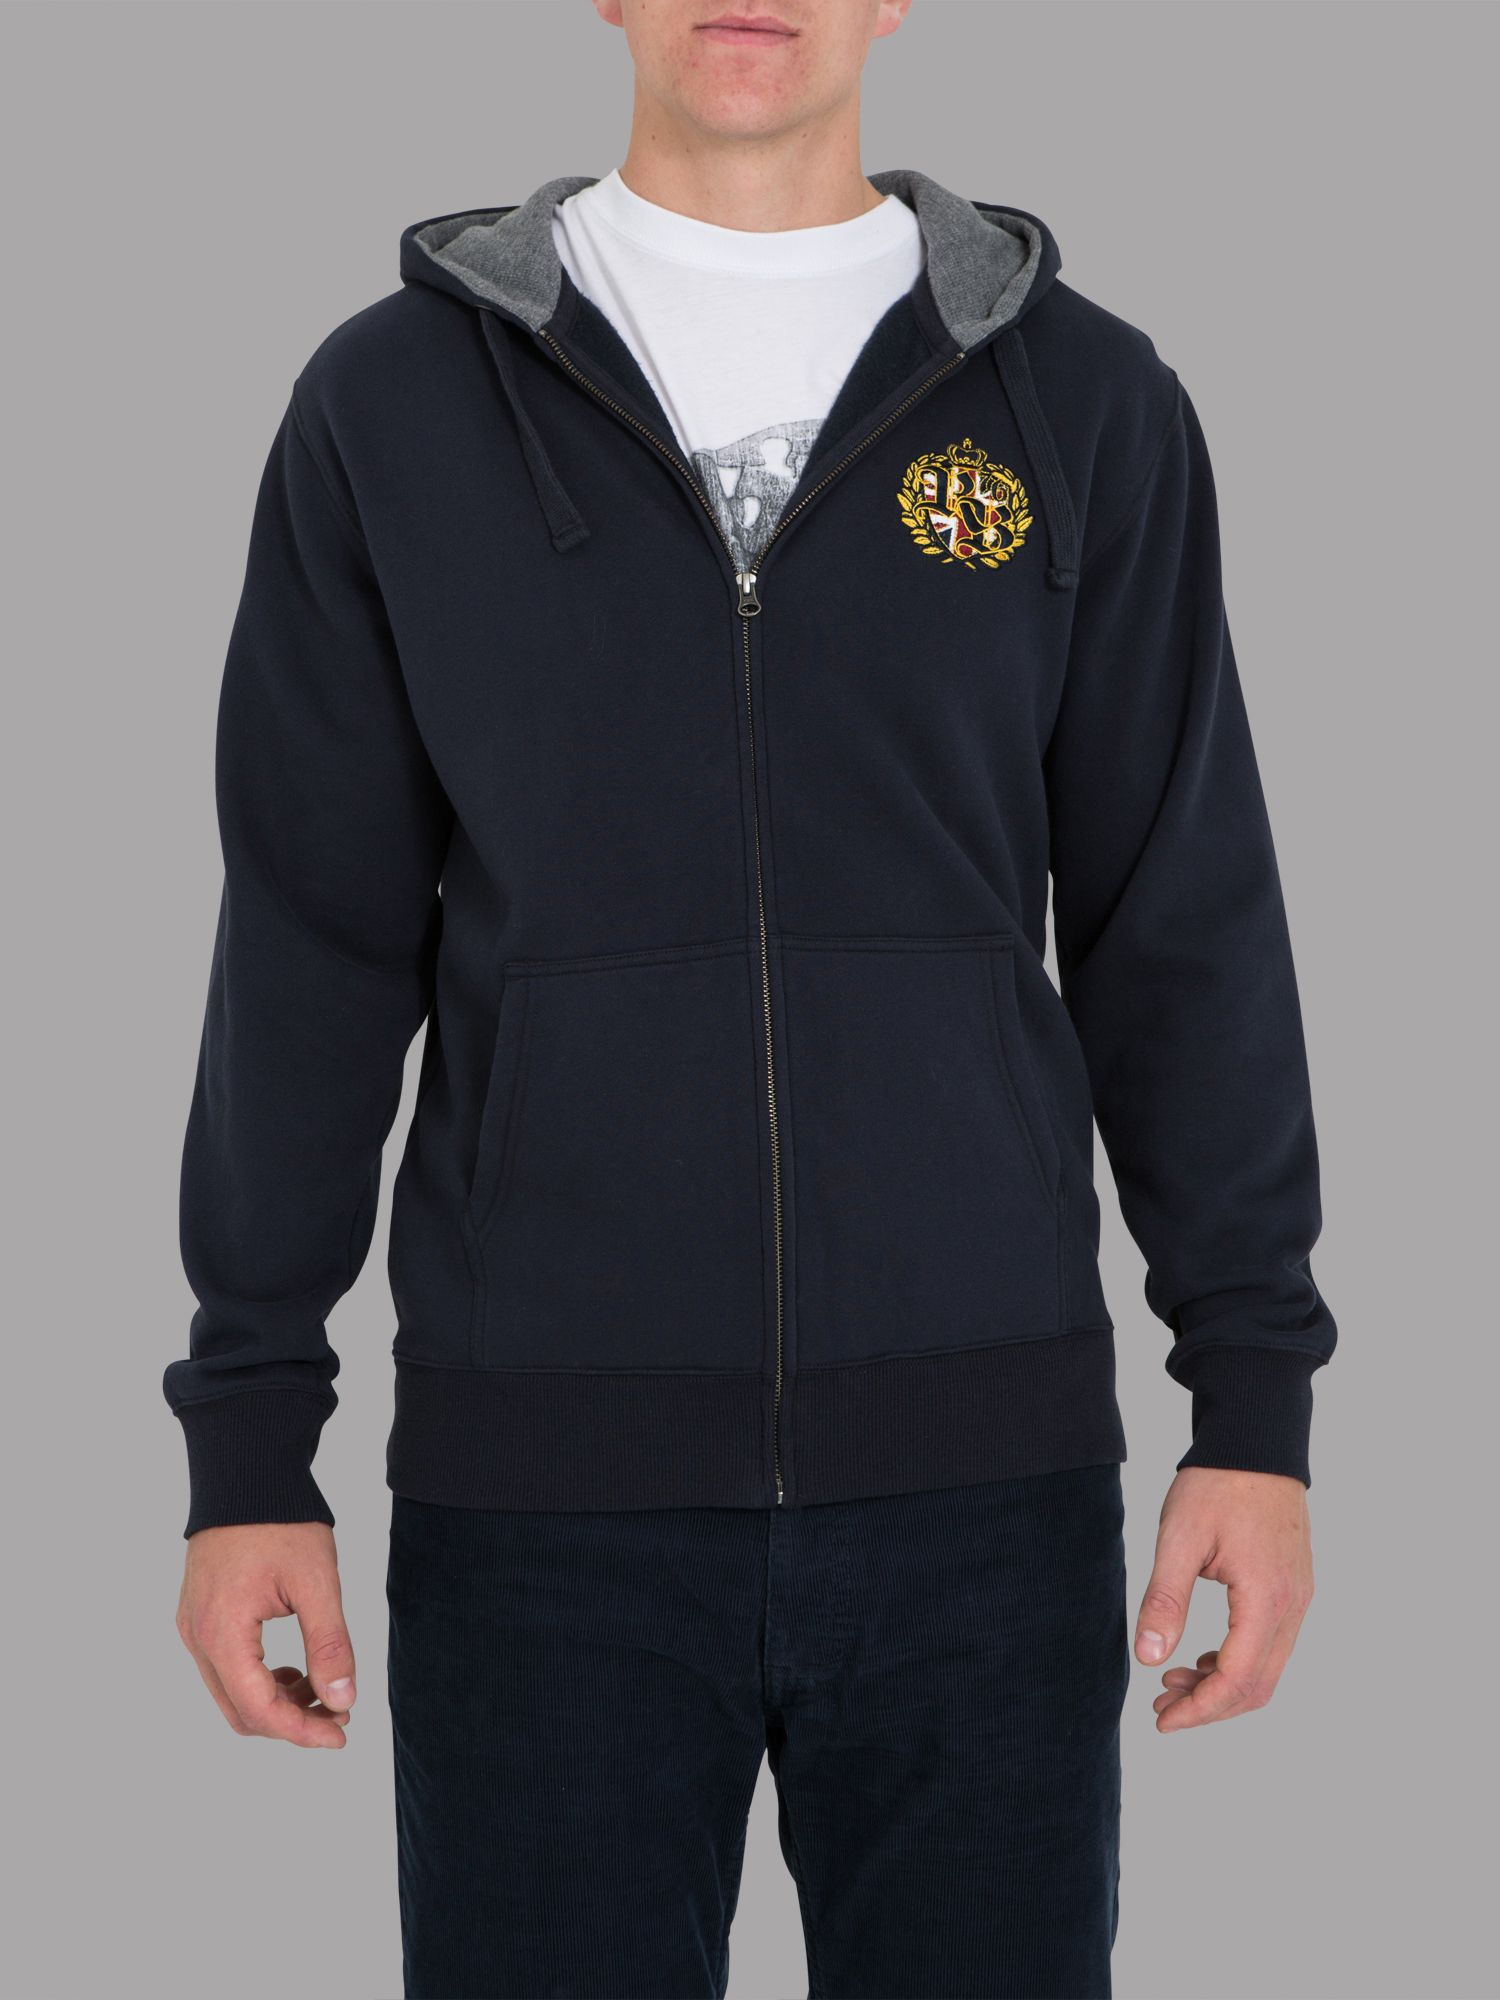 Big and tall emblem hoody navy